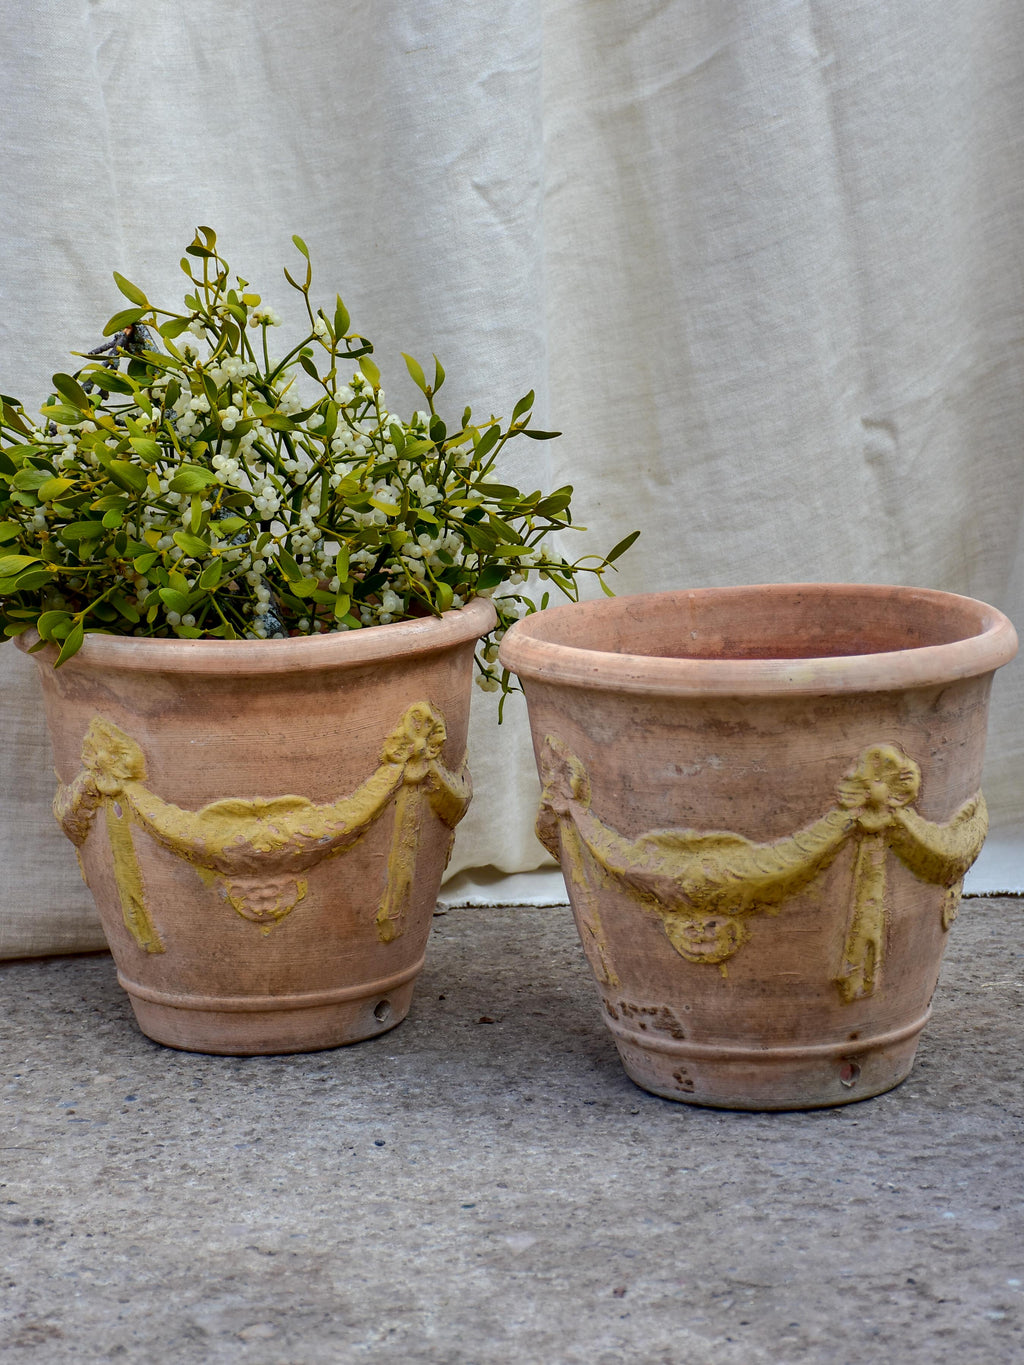 Pair of vintage terracotta garden planters with garlands